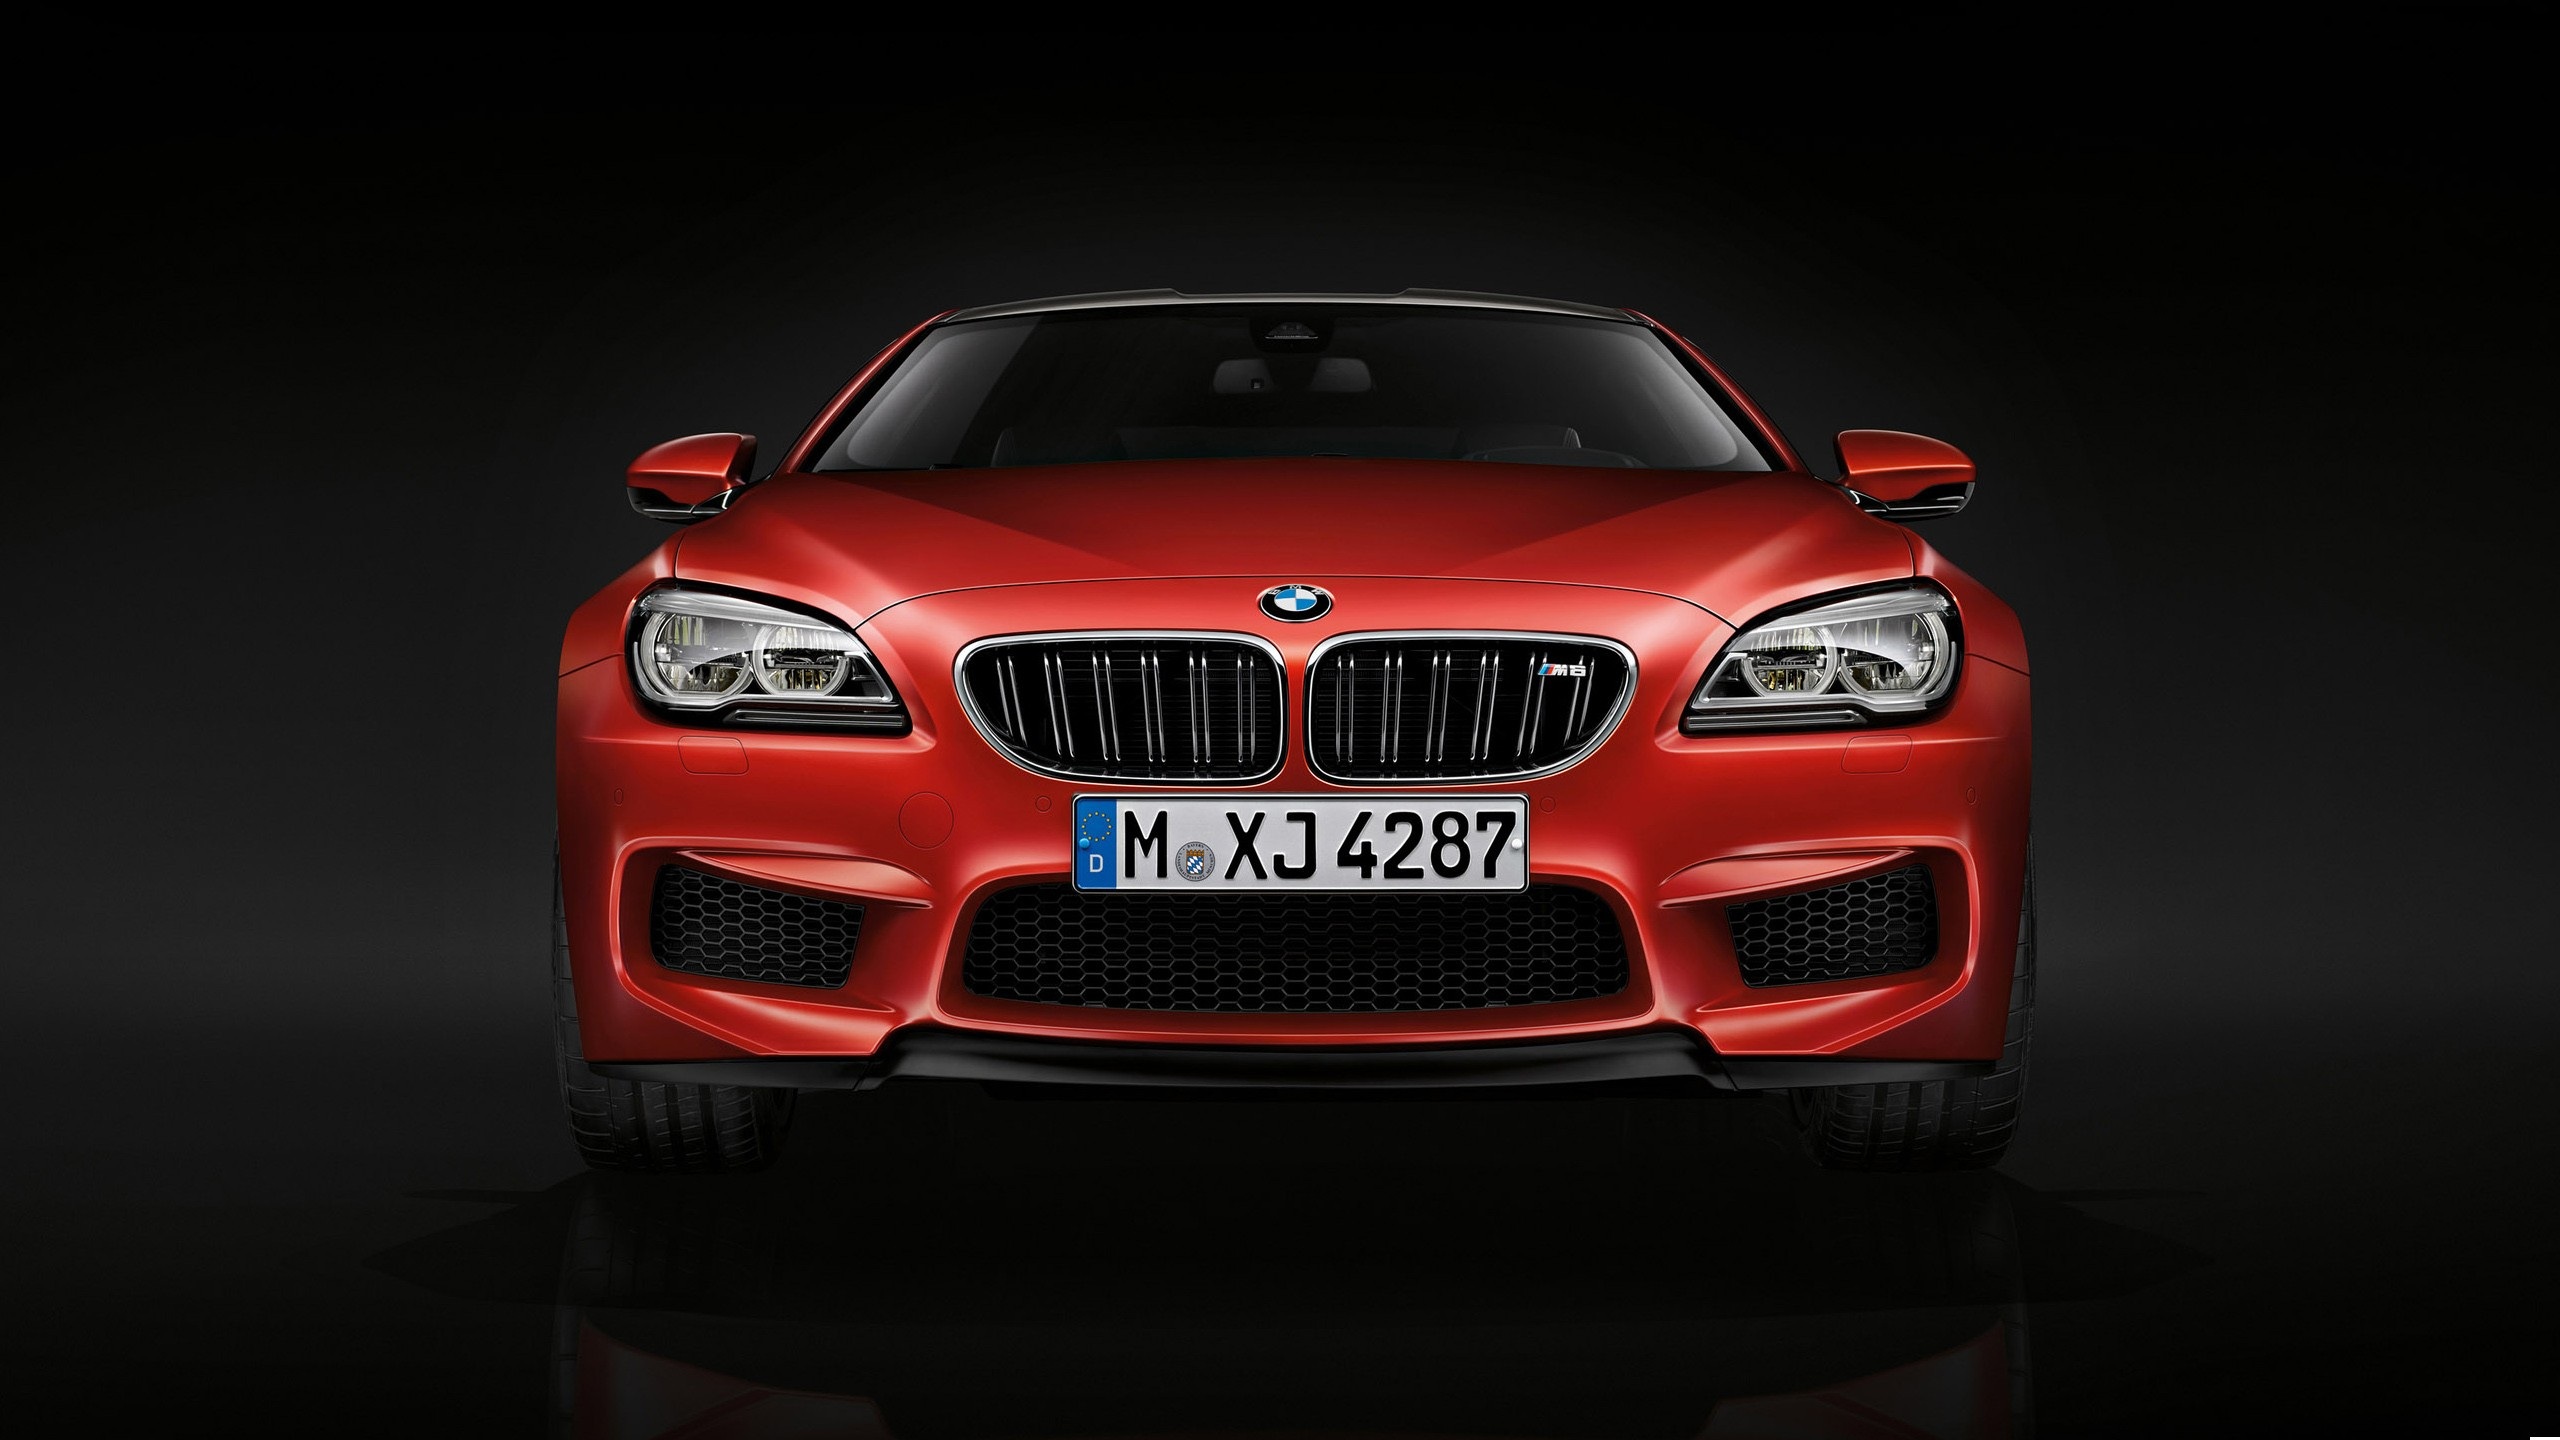 Cars Hd Wallpapers 1080p For Pc Bmw 2015 Bmw M6 Competition Package Wallpaper Hd Car